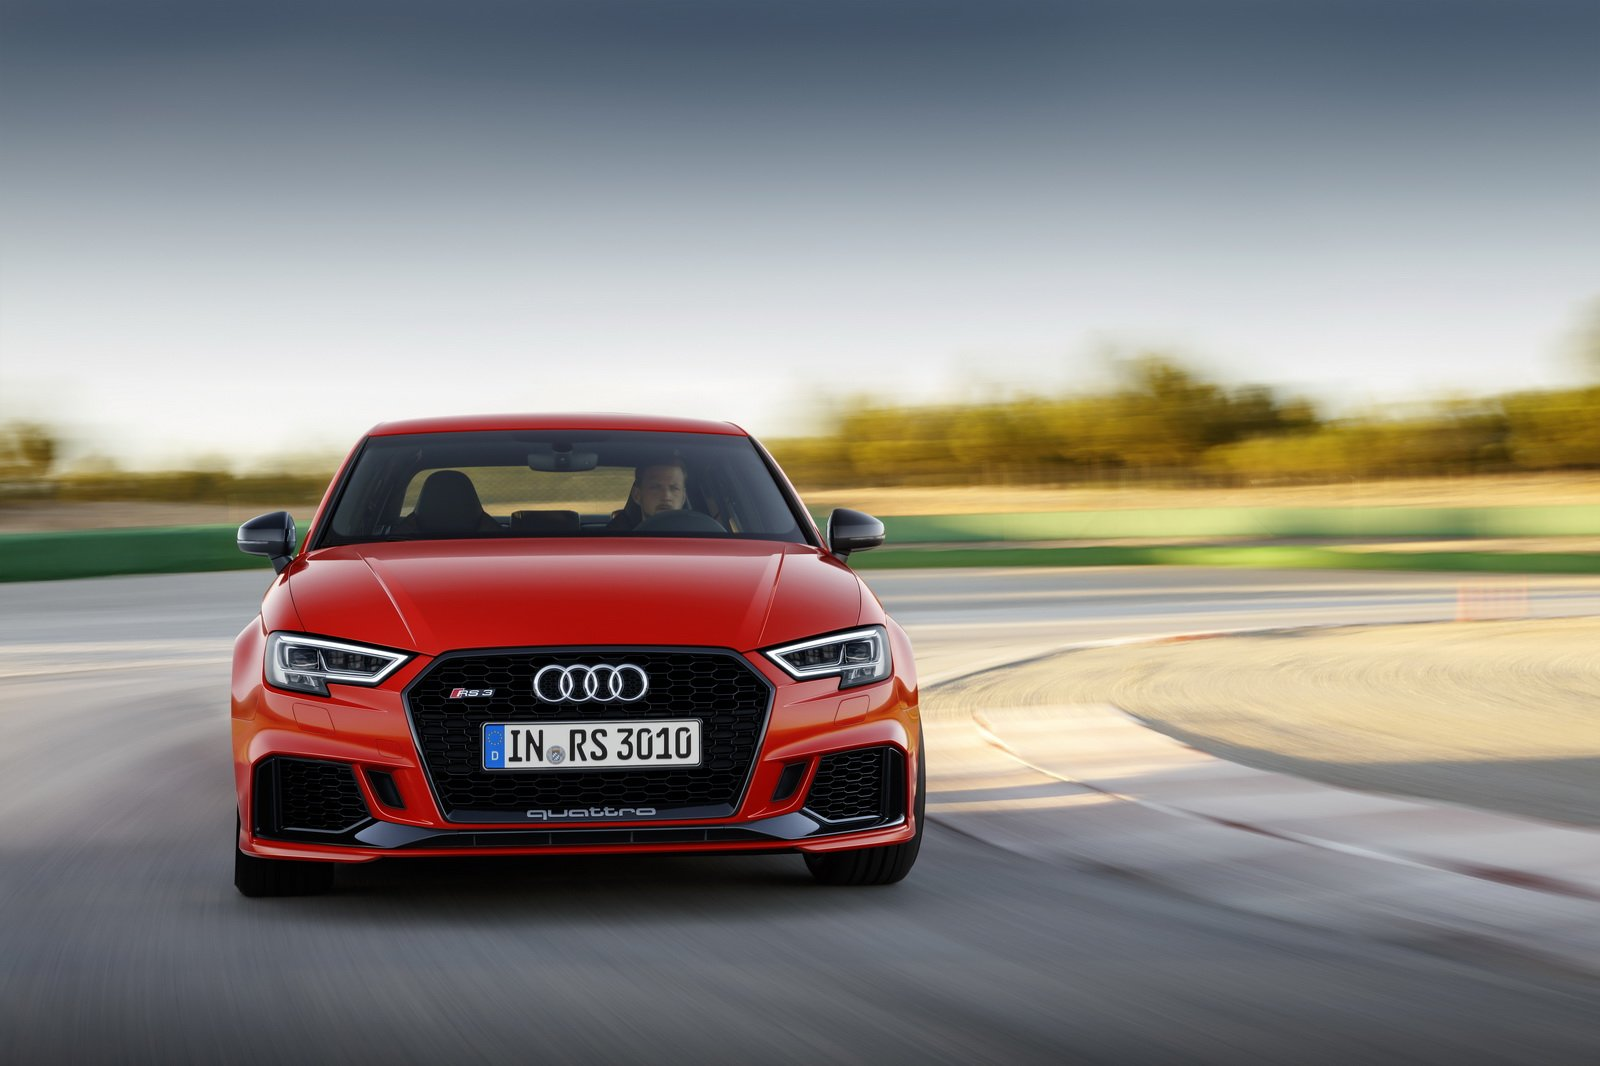 Latest 400 Hp Audi Rs3 Sedan To Retail From 62 900 In Canada Free Download